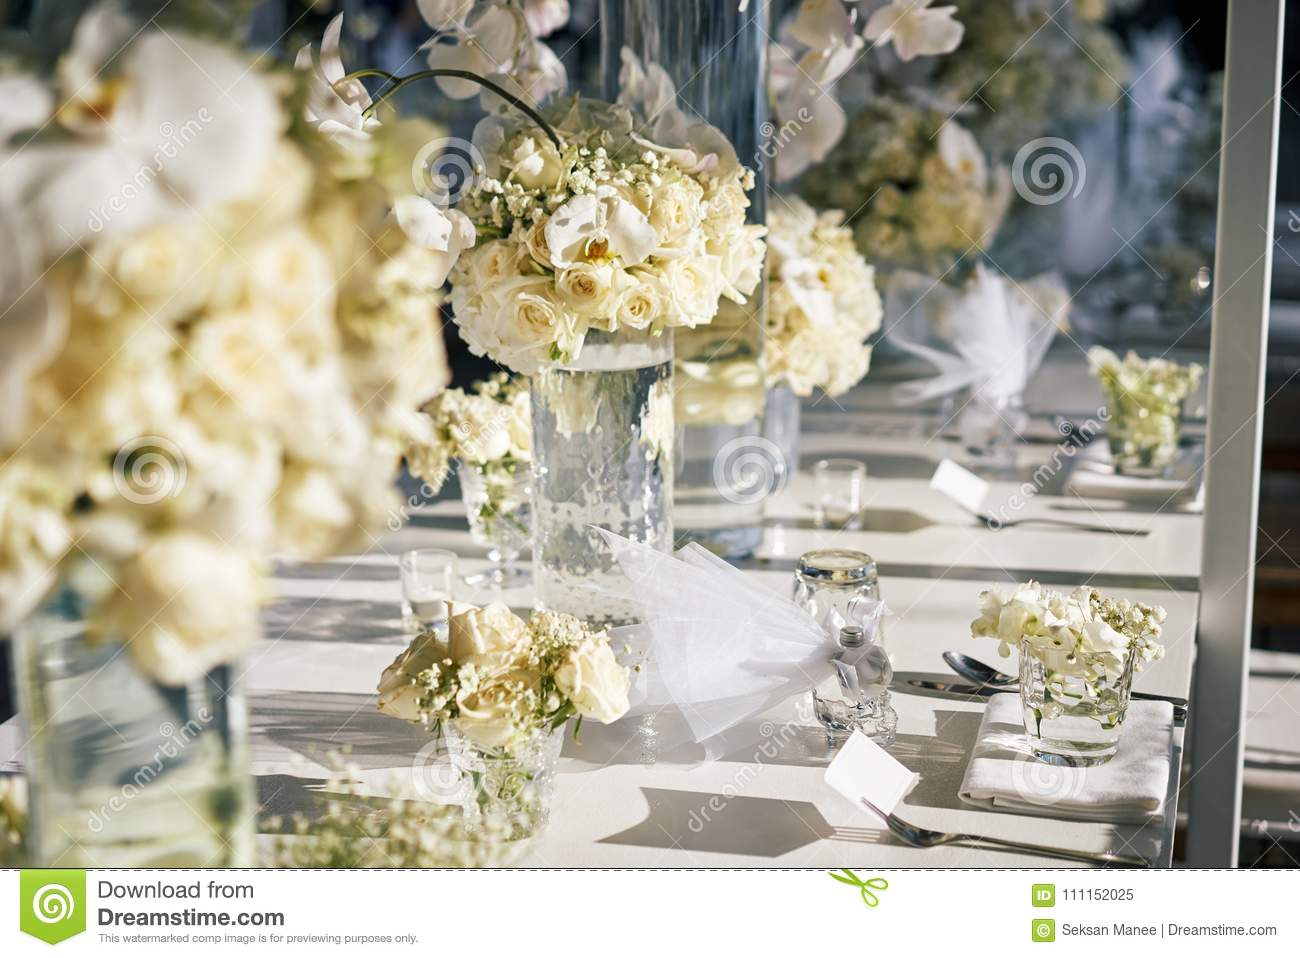 The White Cream Roses Orchids Decoration On The Reception Dinner